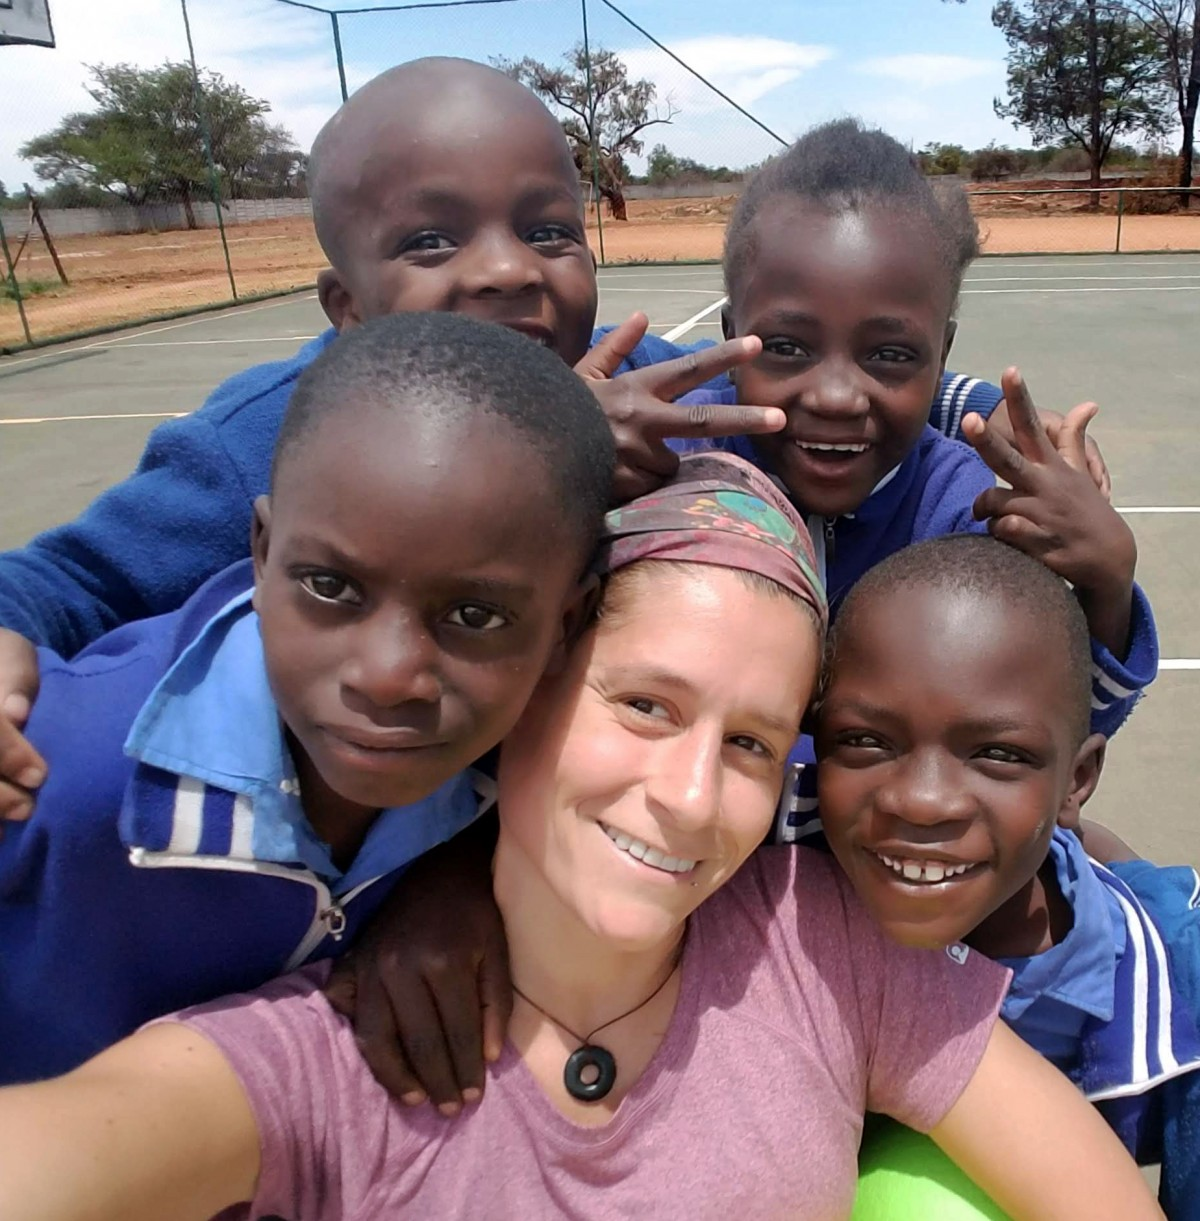 A photo taken during Jessica's capstone project in Zimbabwe.